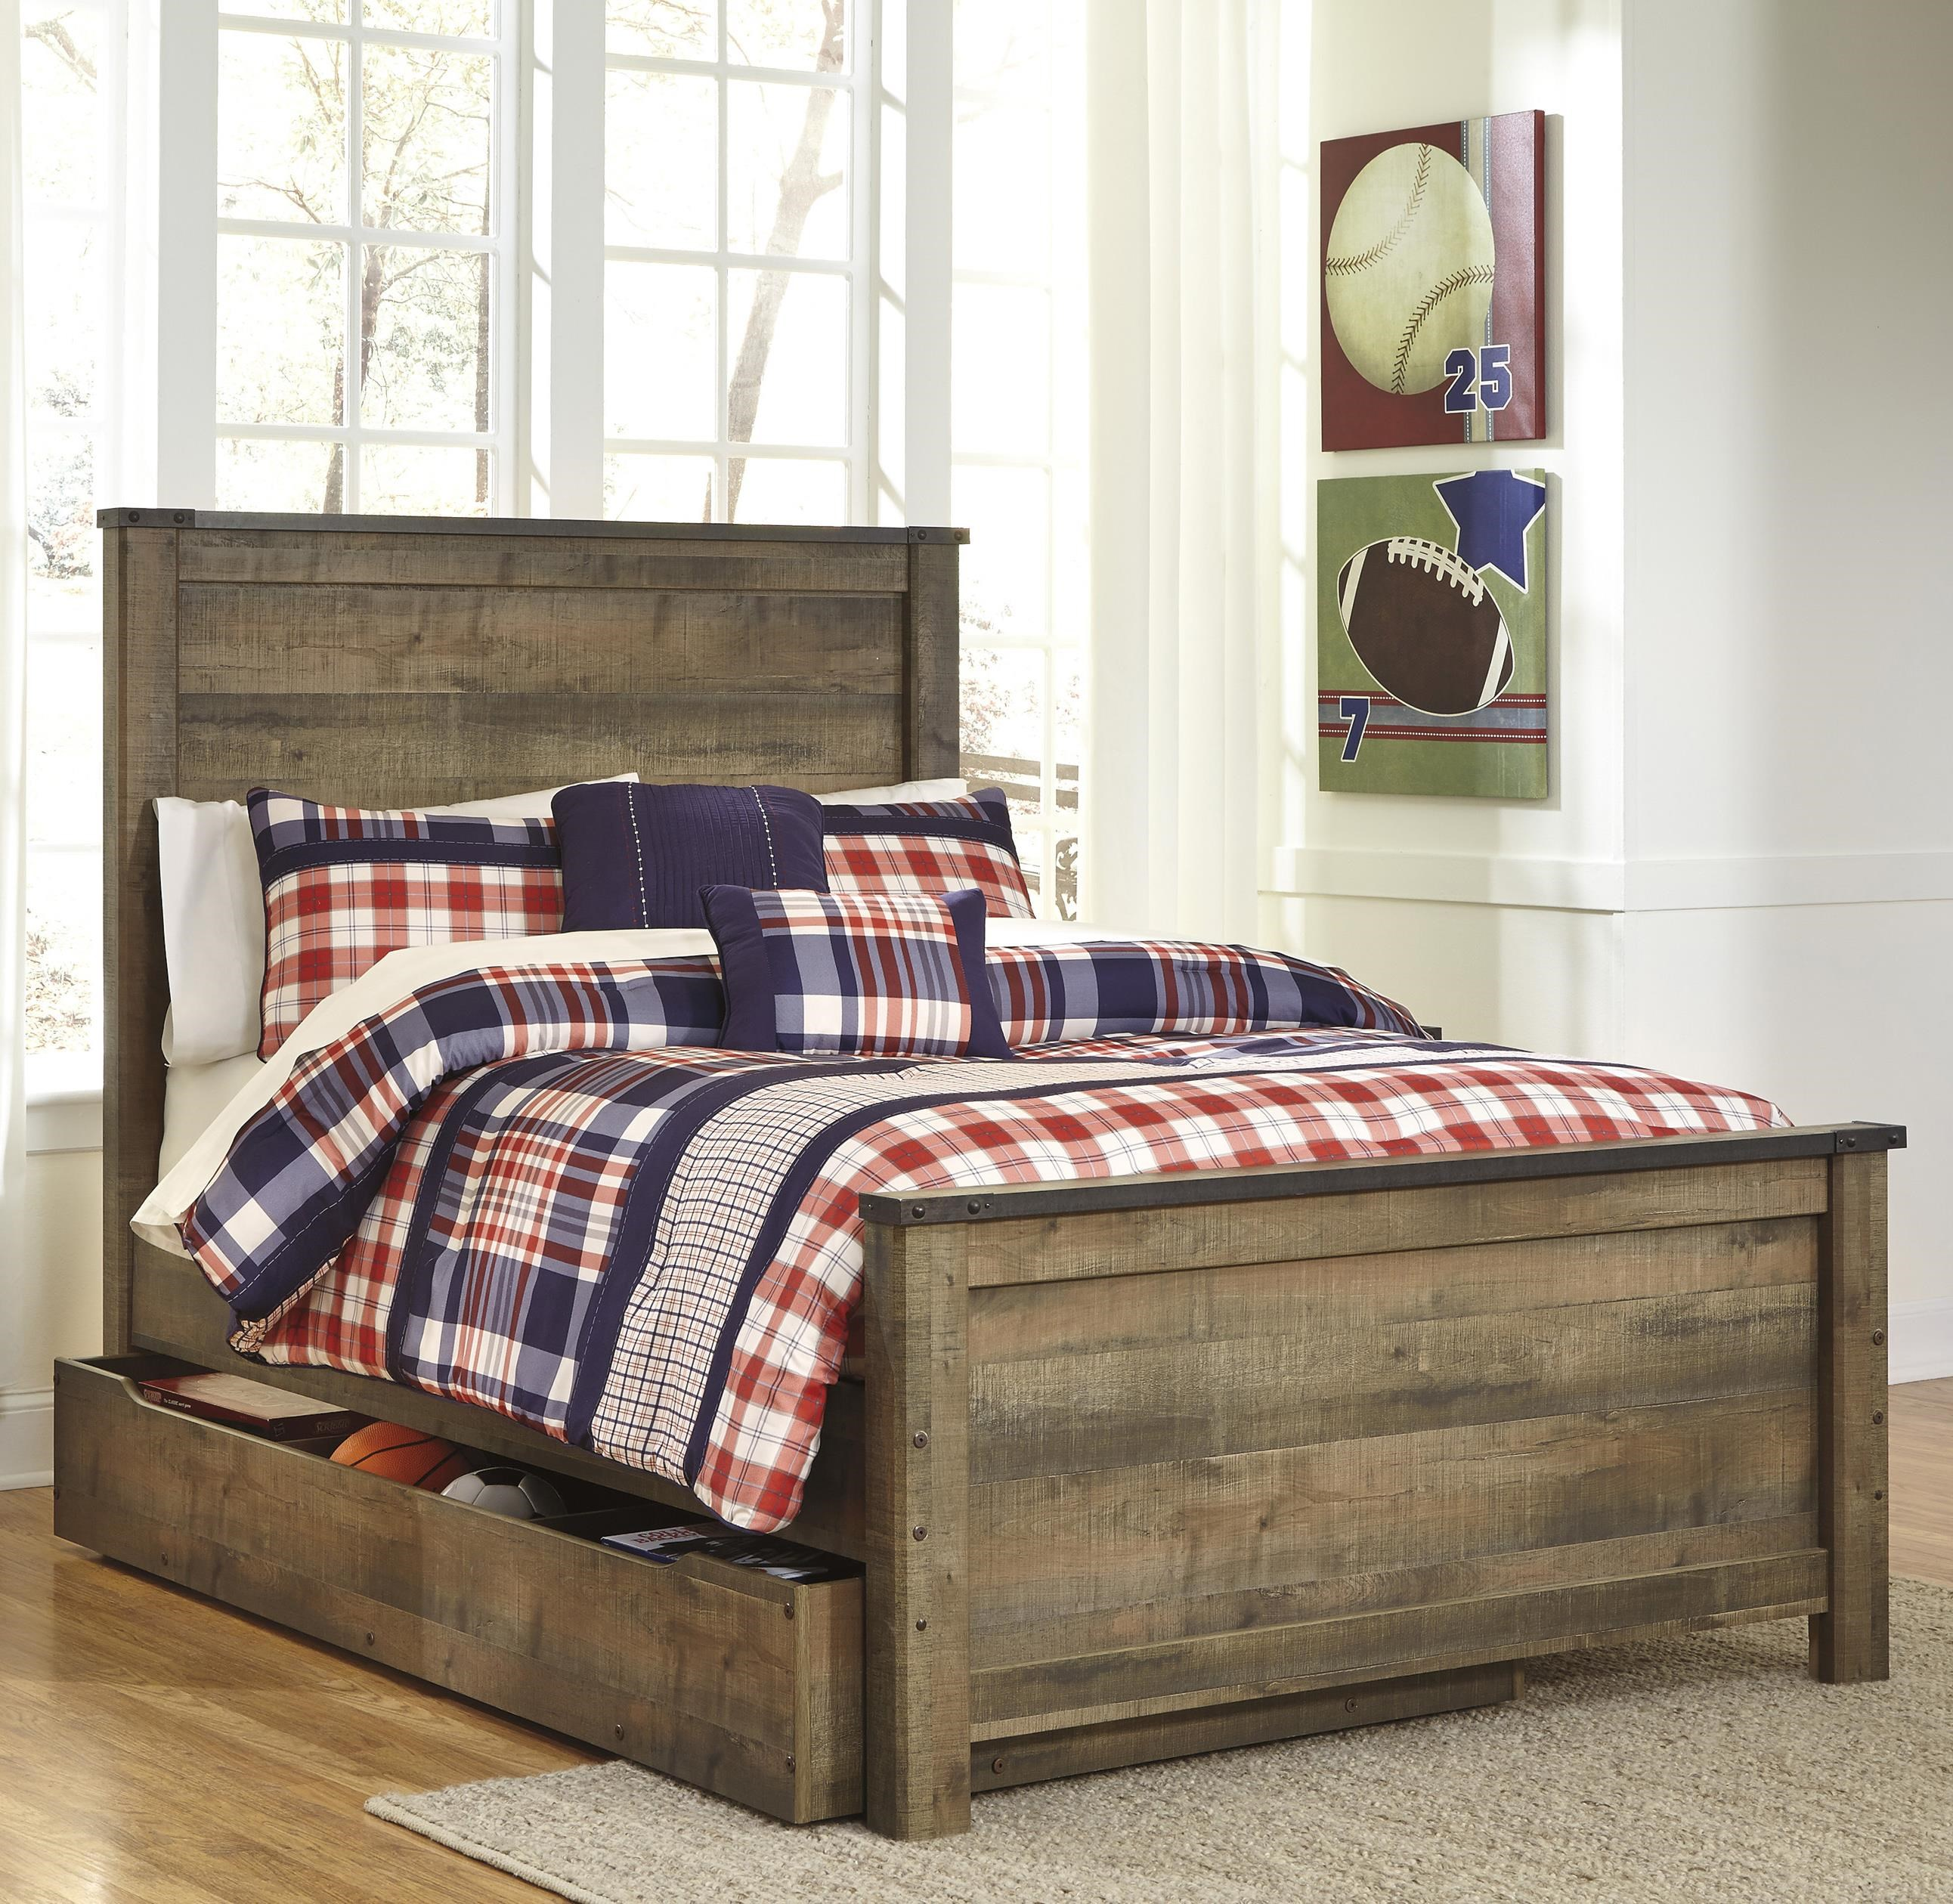 Signature Design By Ashley Trinell Rustic Look Full Panel Bed With Under Bed Storage Trundle Royal Furniture Panel Beds